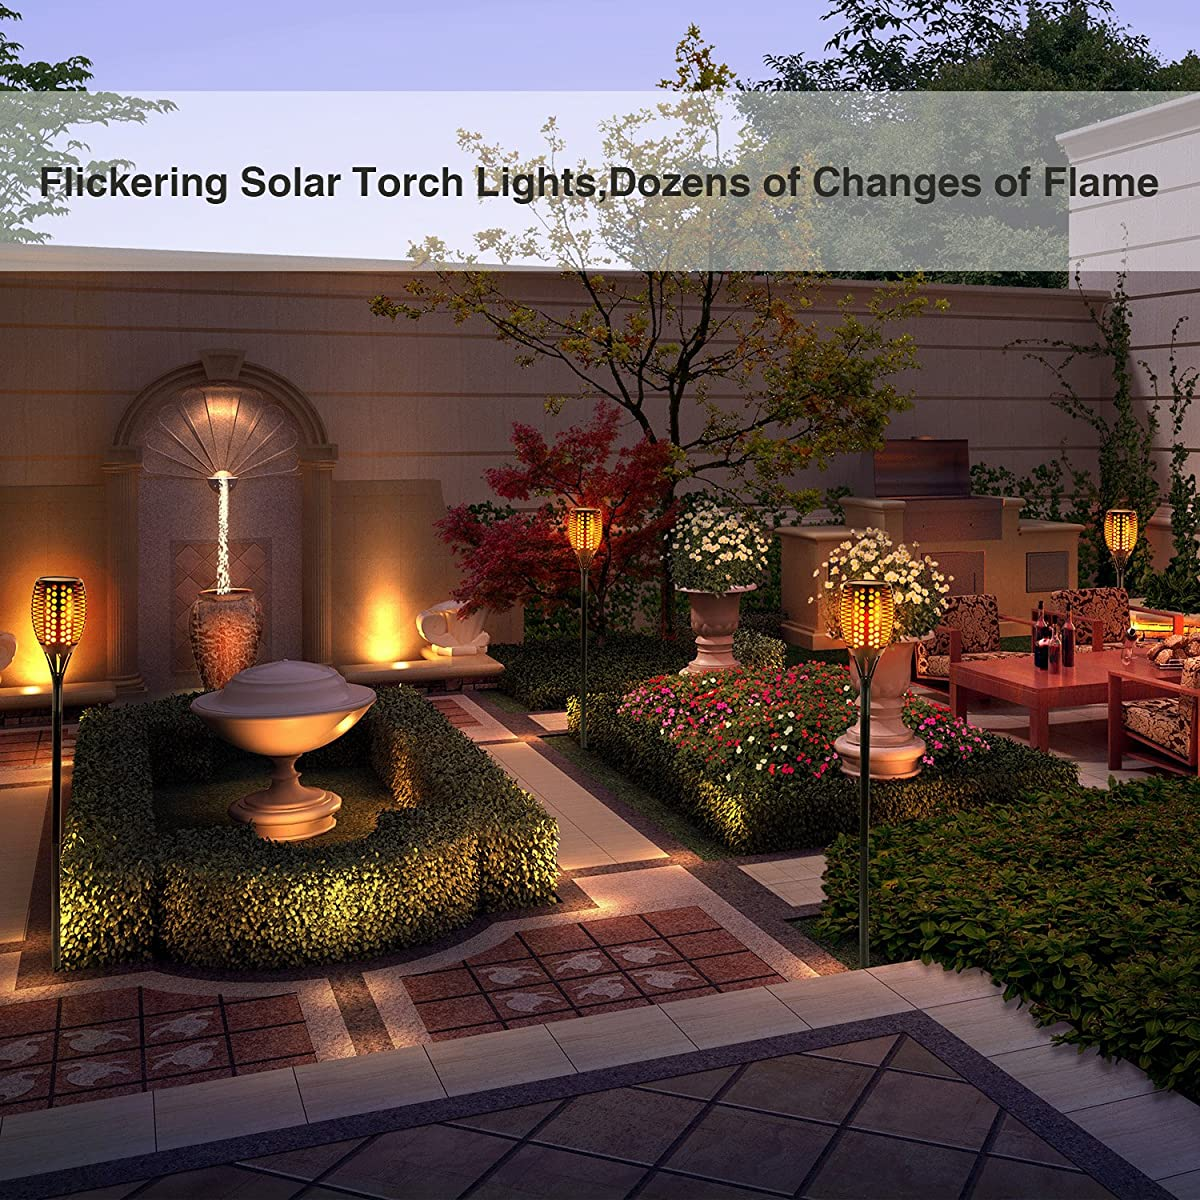 Patio Lights Wireless: Solar Torch Lights,Balight Dancing Flame Lighting 96 LED